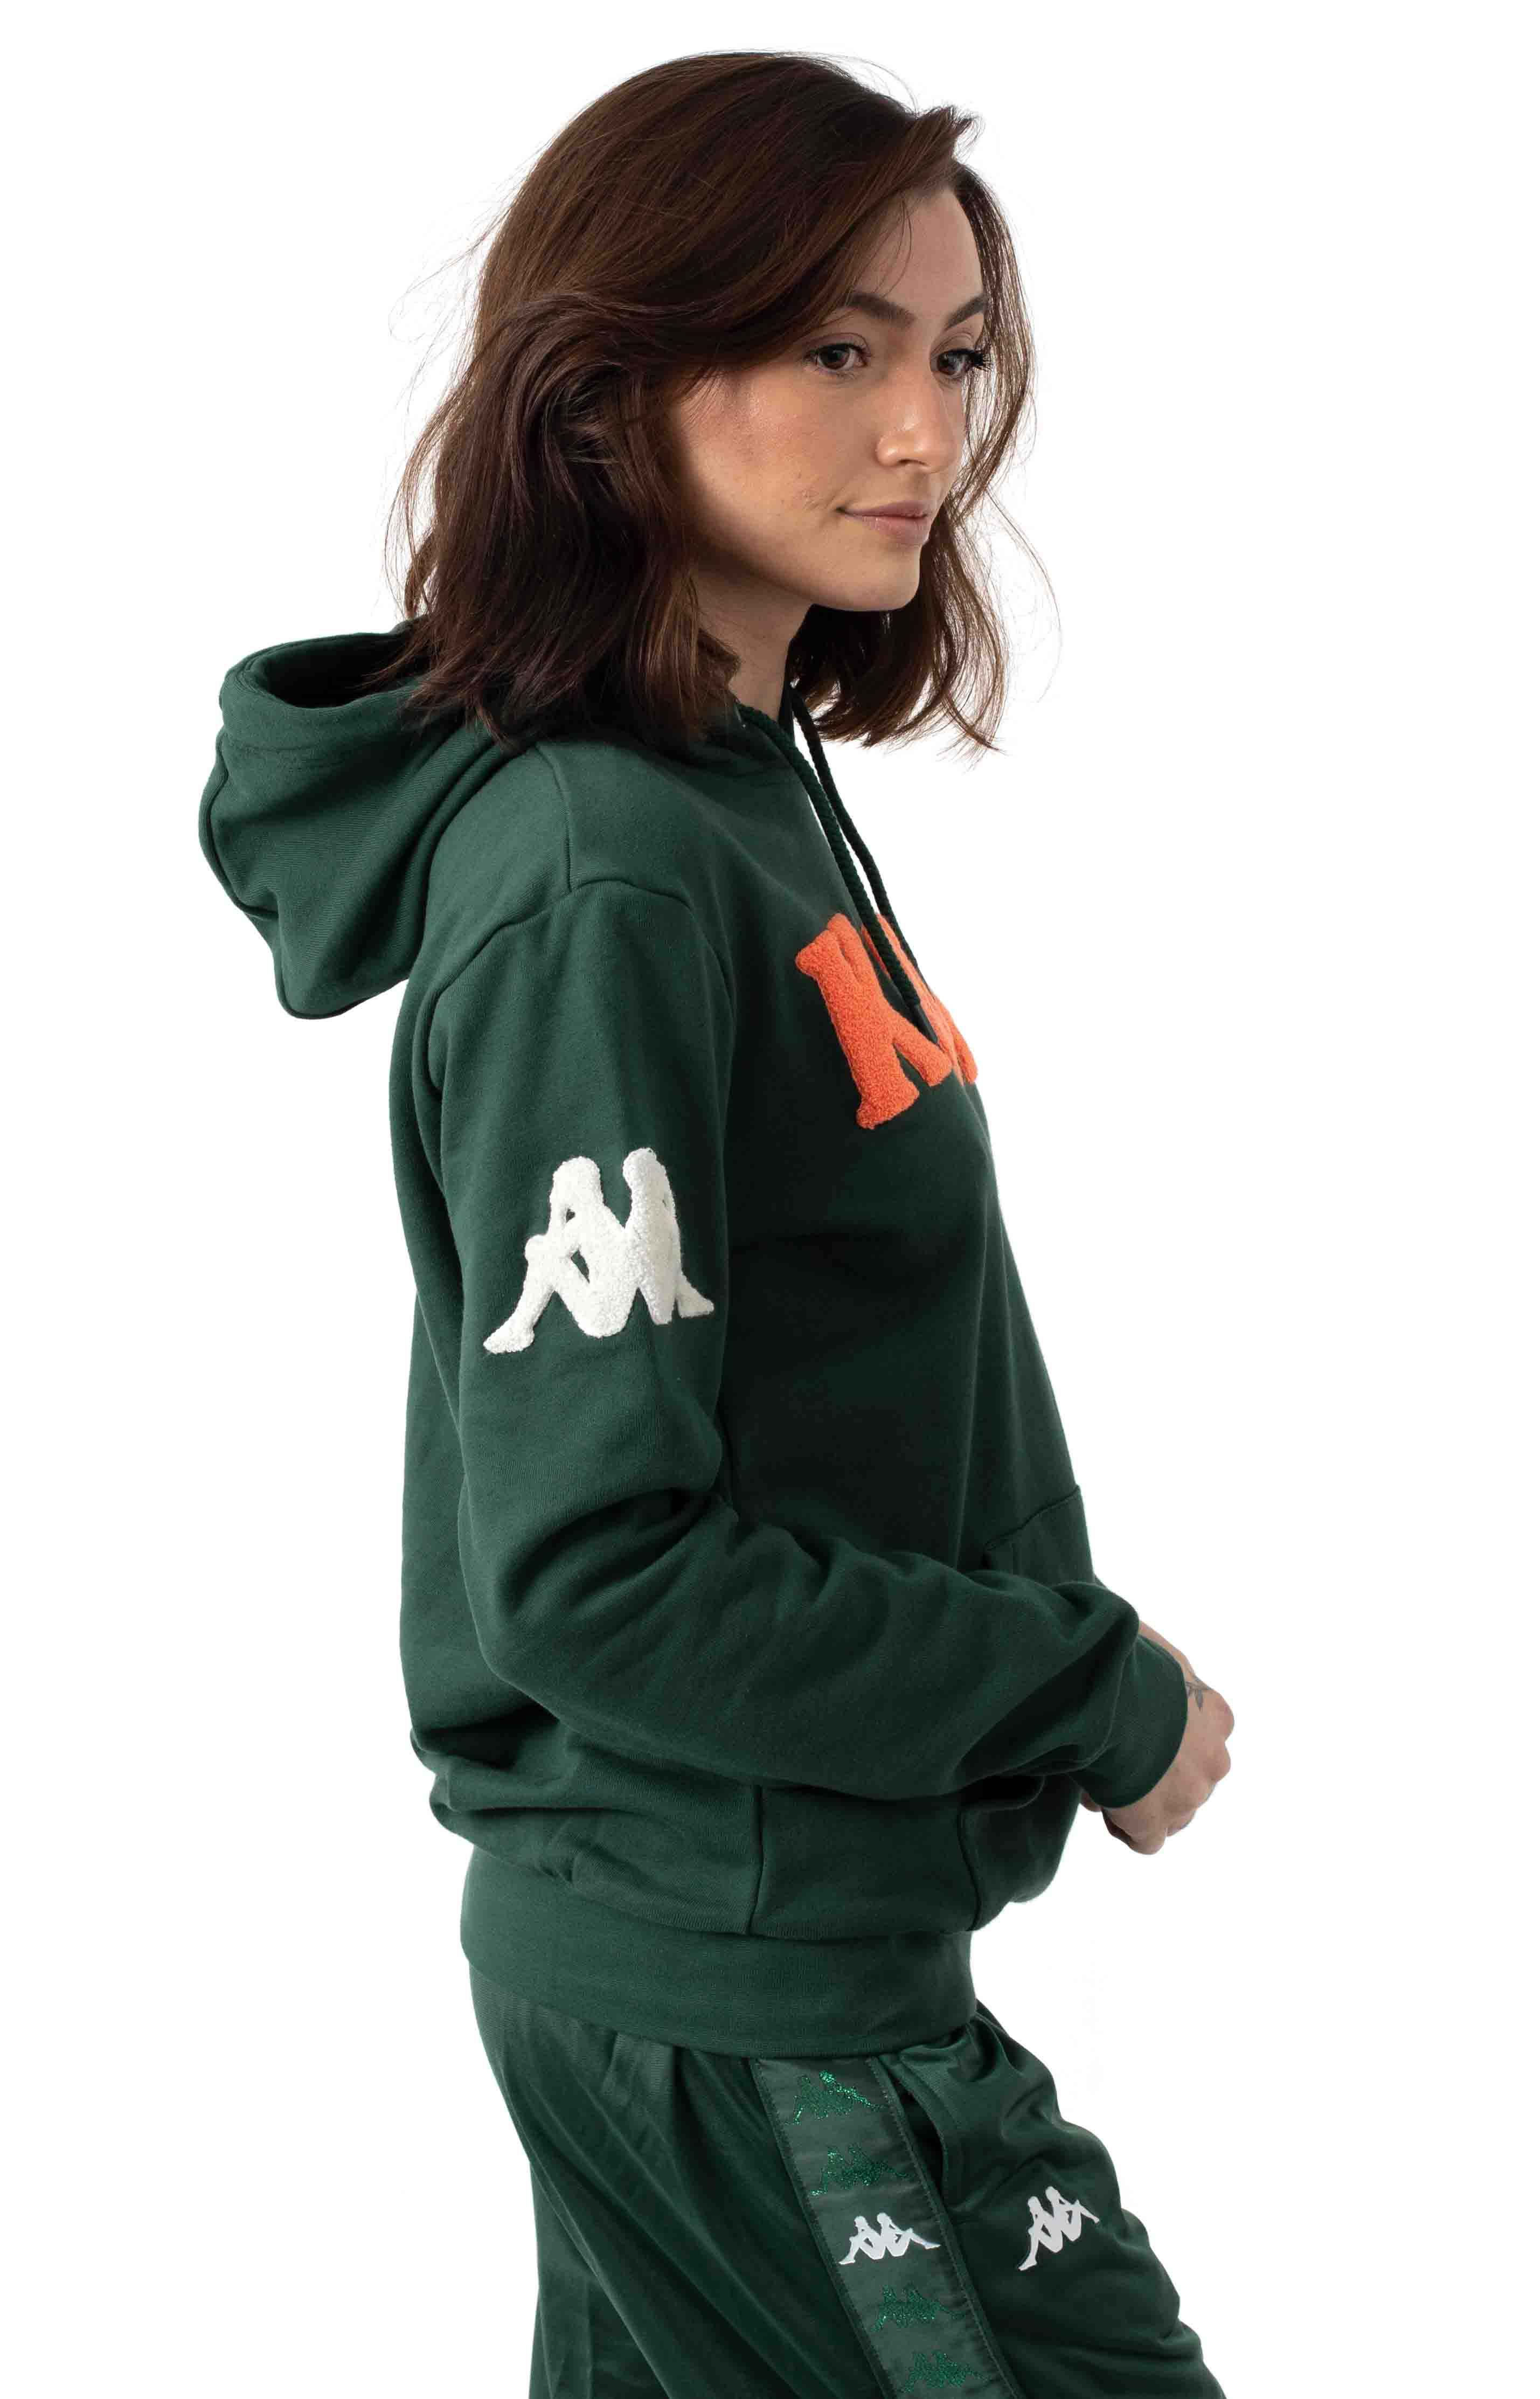 Authentic Bluvi Pullover Hoodie - Green 2